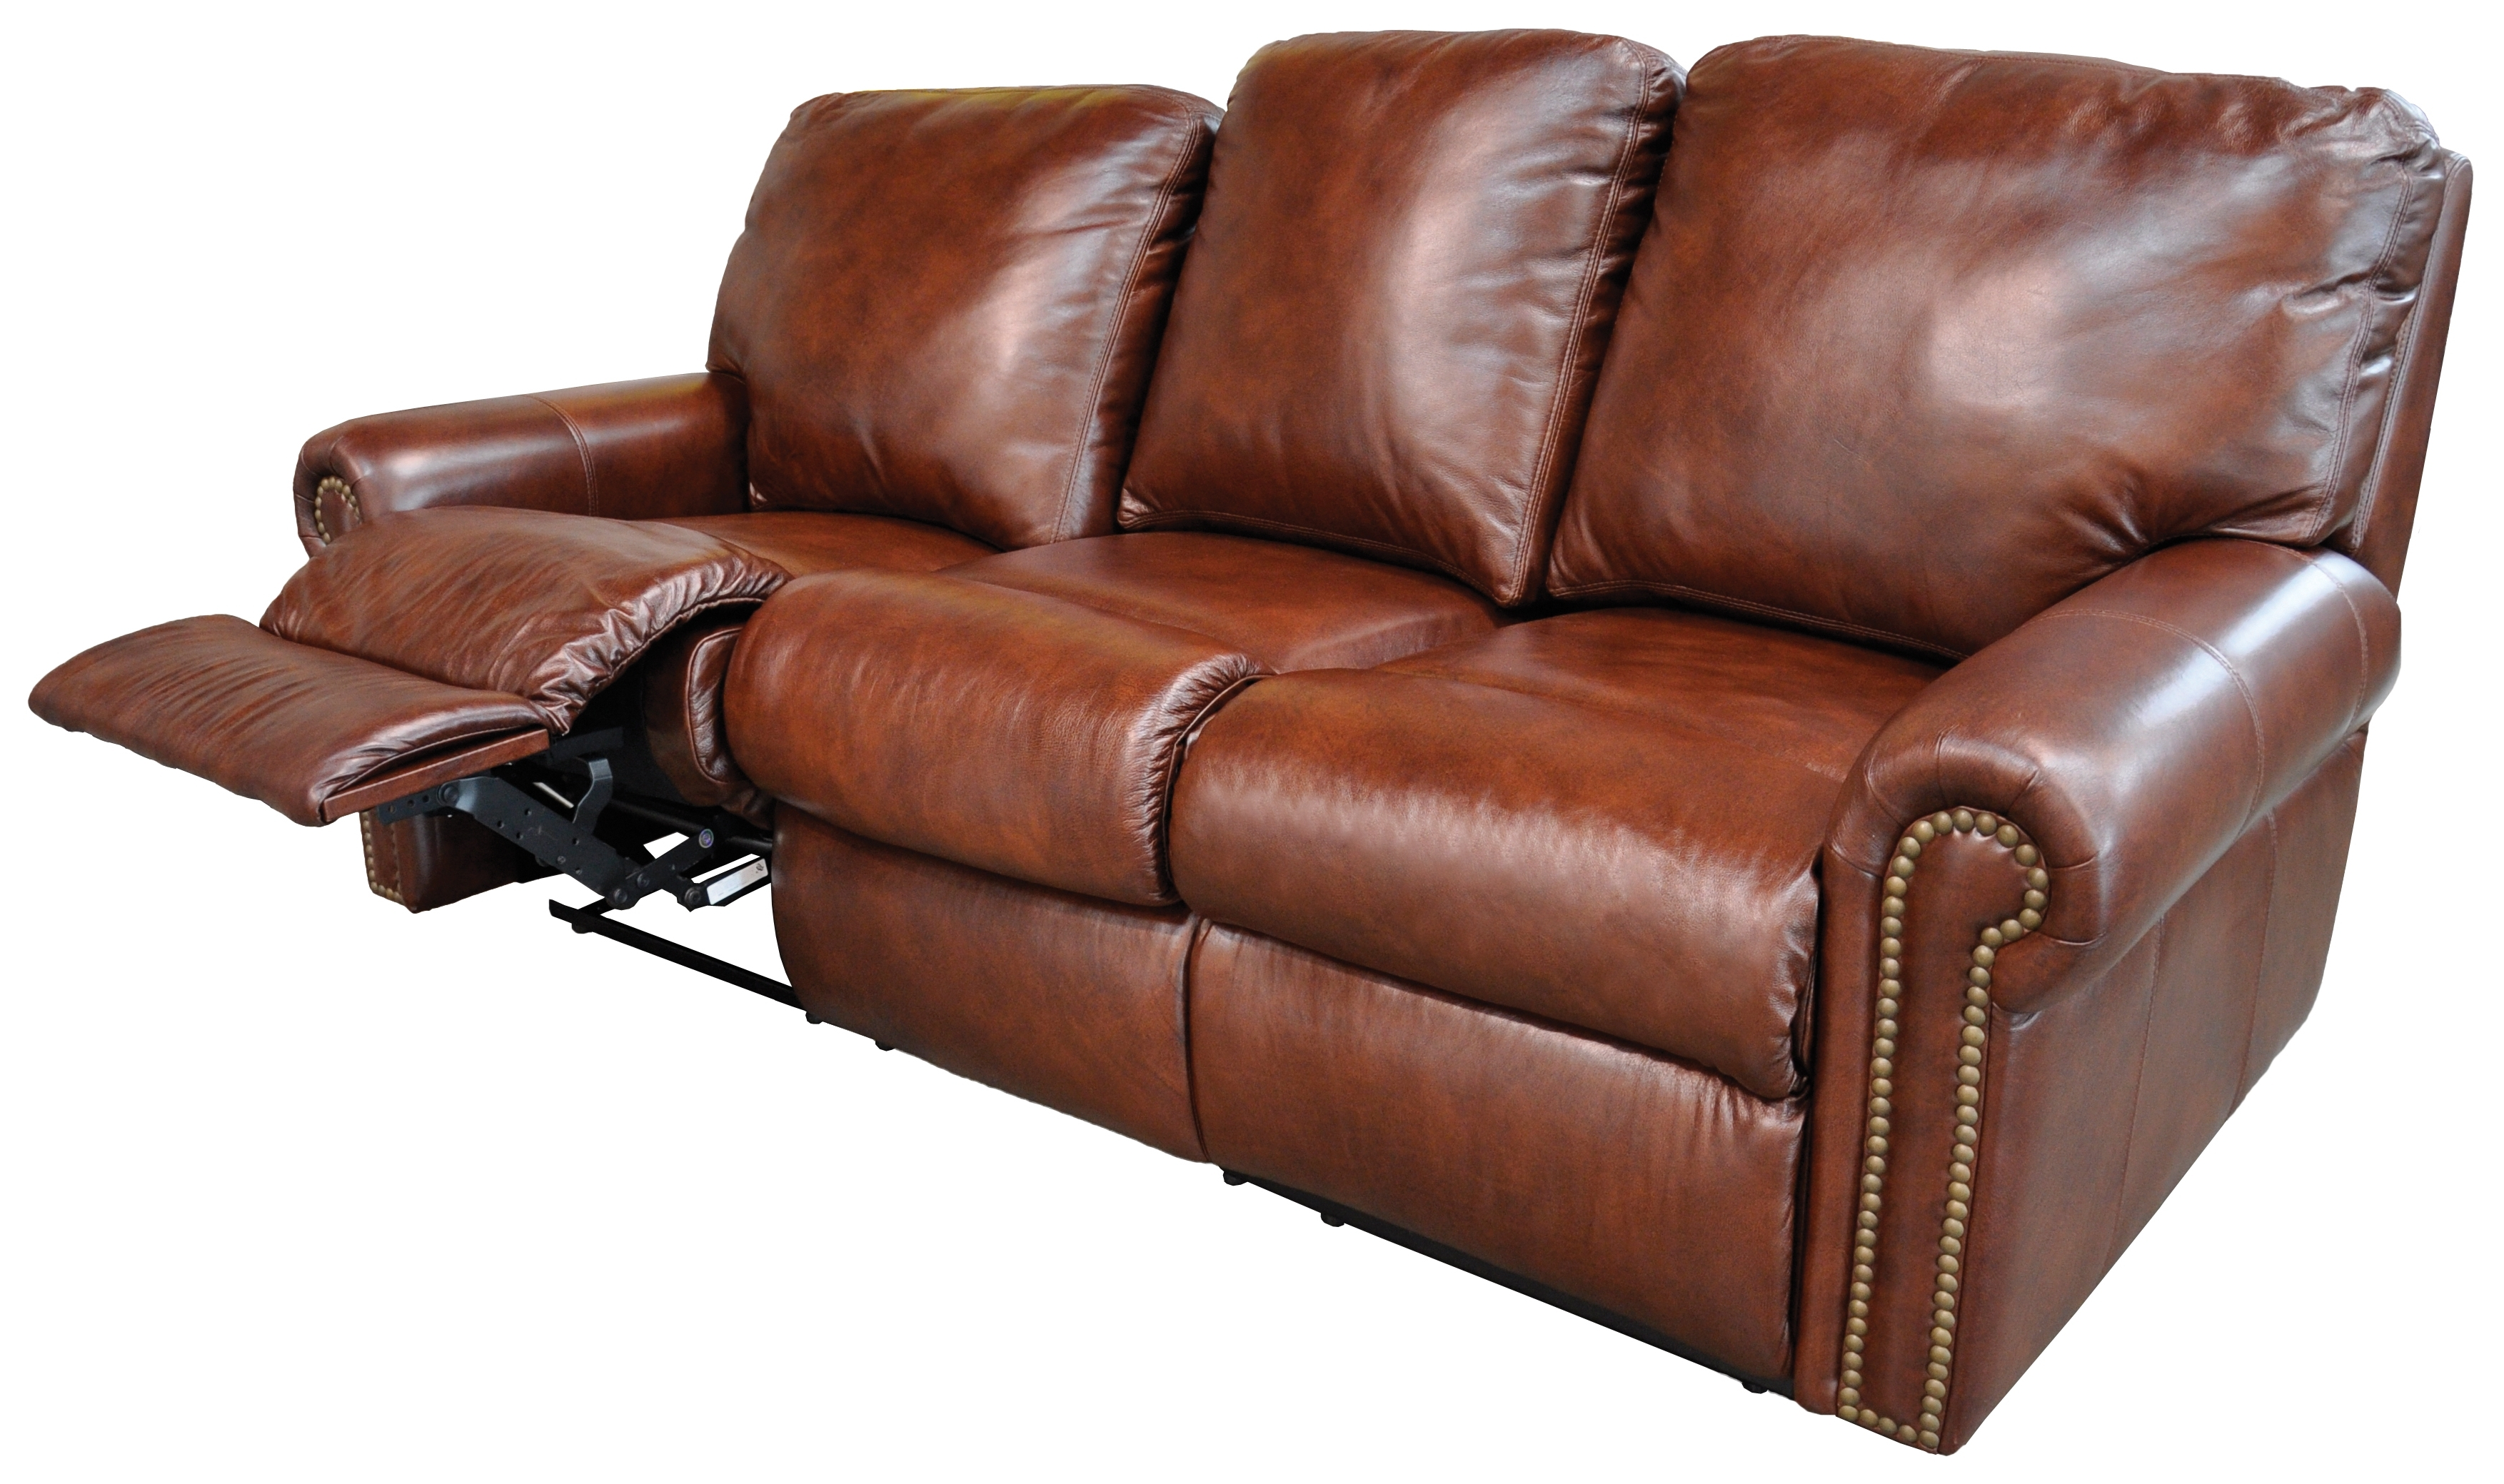 Sofa Recliner Leather – Home And Textiles In Most Popular Modern Reclining Leather Sofas (View 19 of 20)